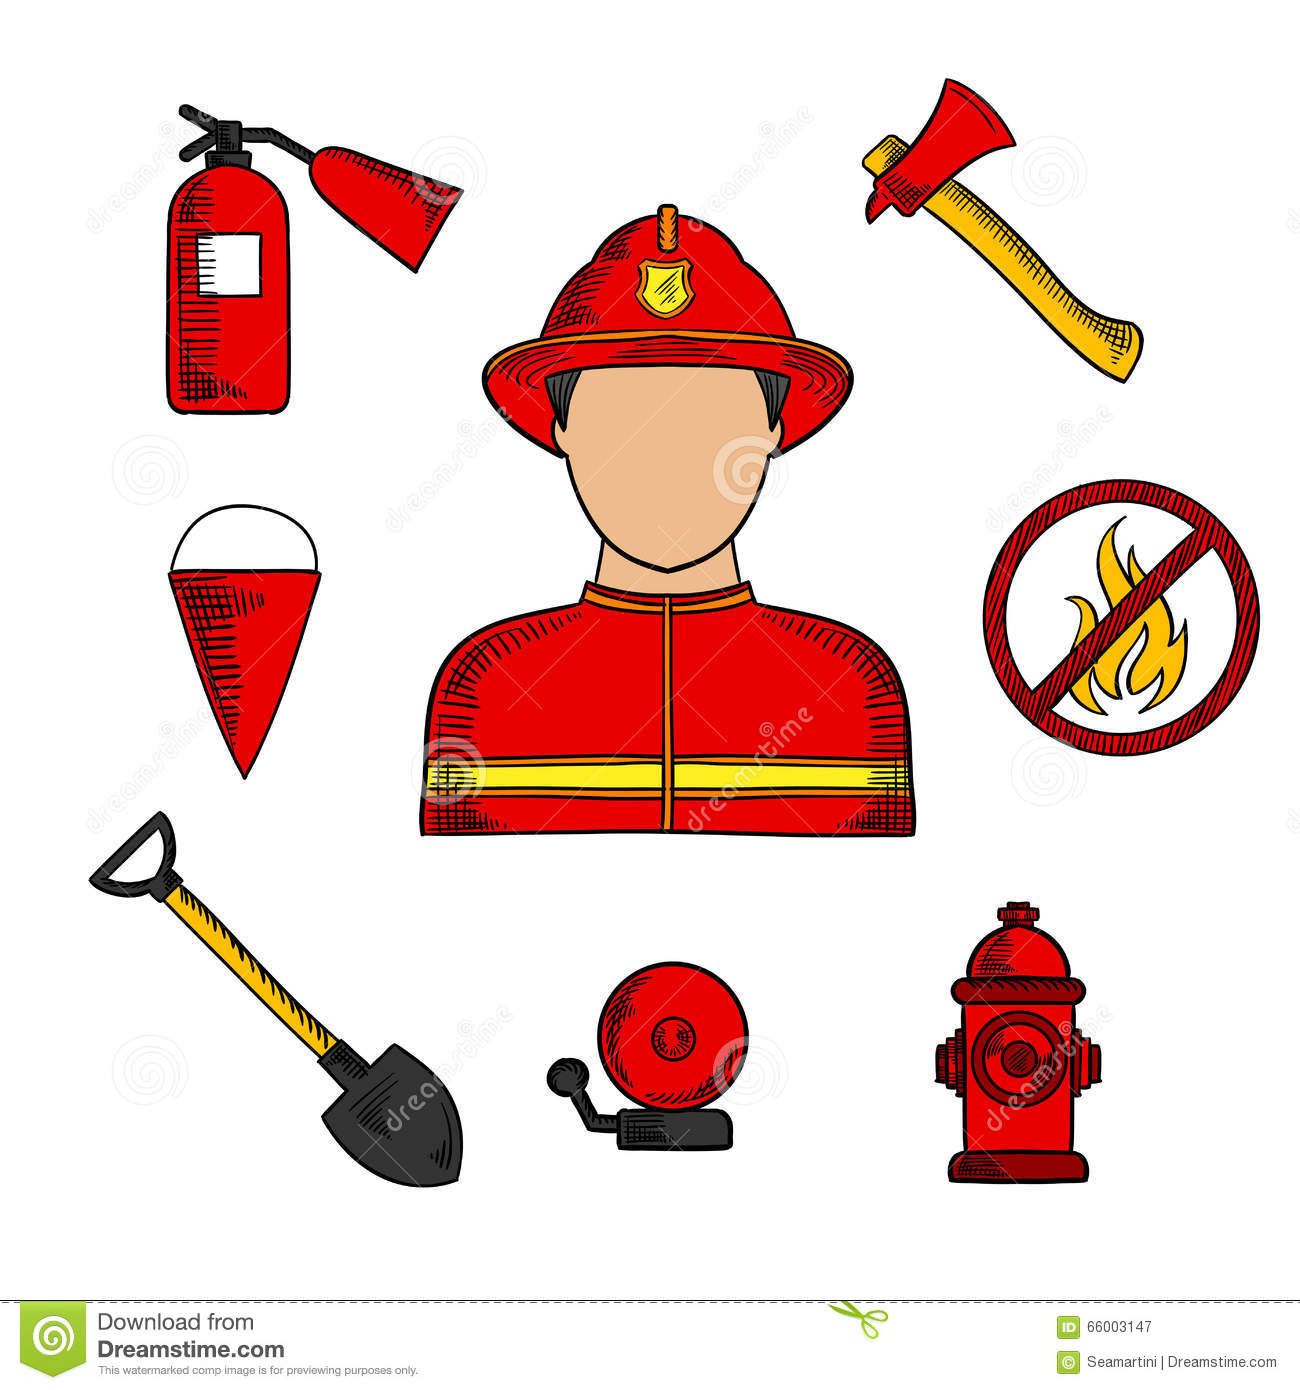 Firefighter symbol clip art image collections symbol and sign ideas fireman and fire fighting symbols stock vector illustration of fireman and fire fighting symbols buycottarizona image buycottarizona Choice Image